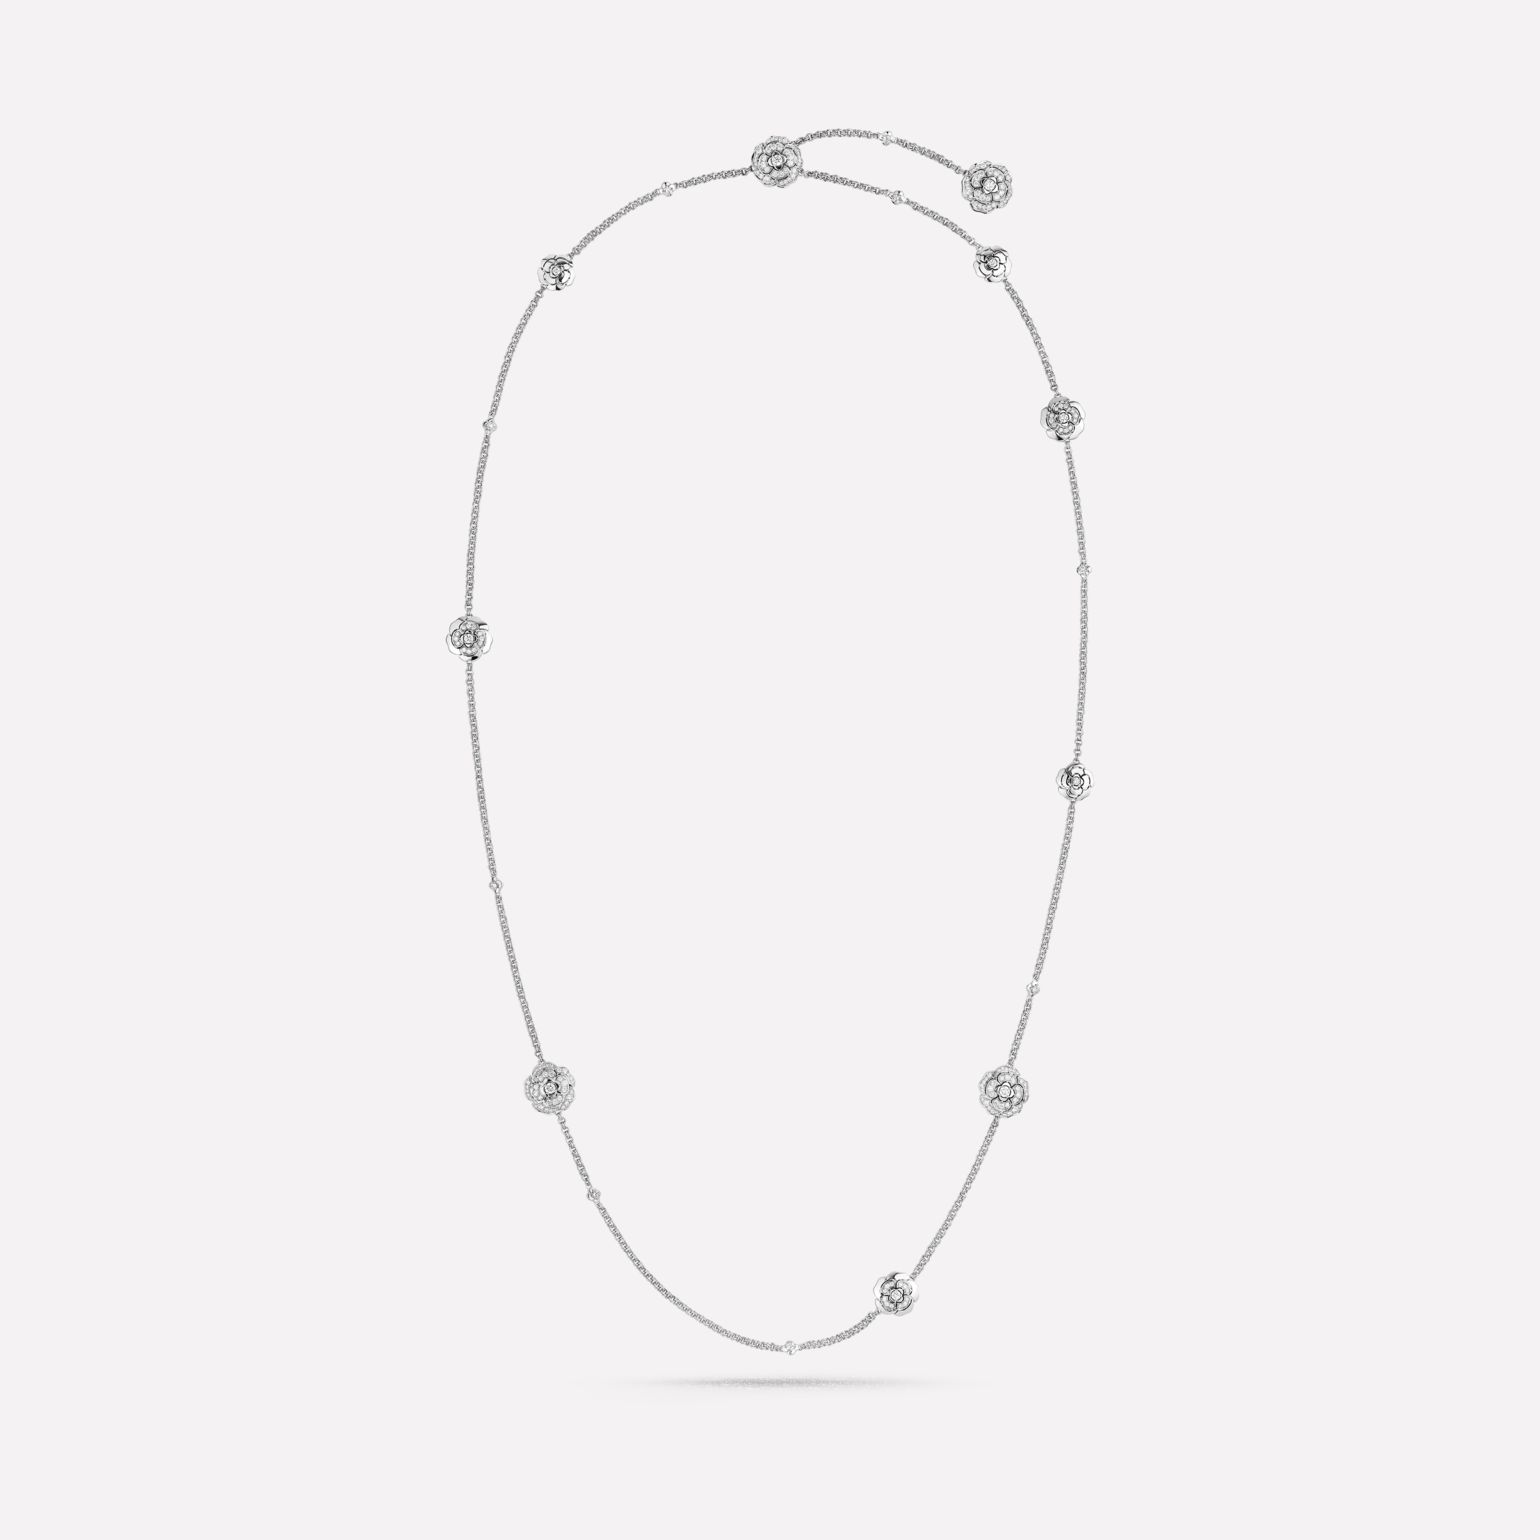 Les infinis de Camélia Transformable long necklace, 18K white gold, diamonds